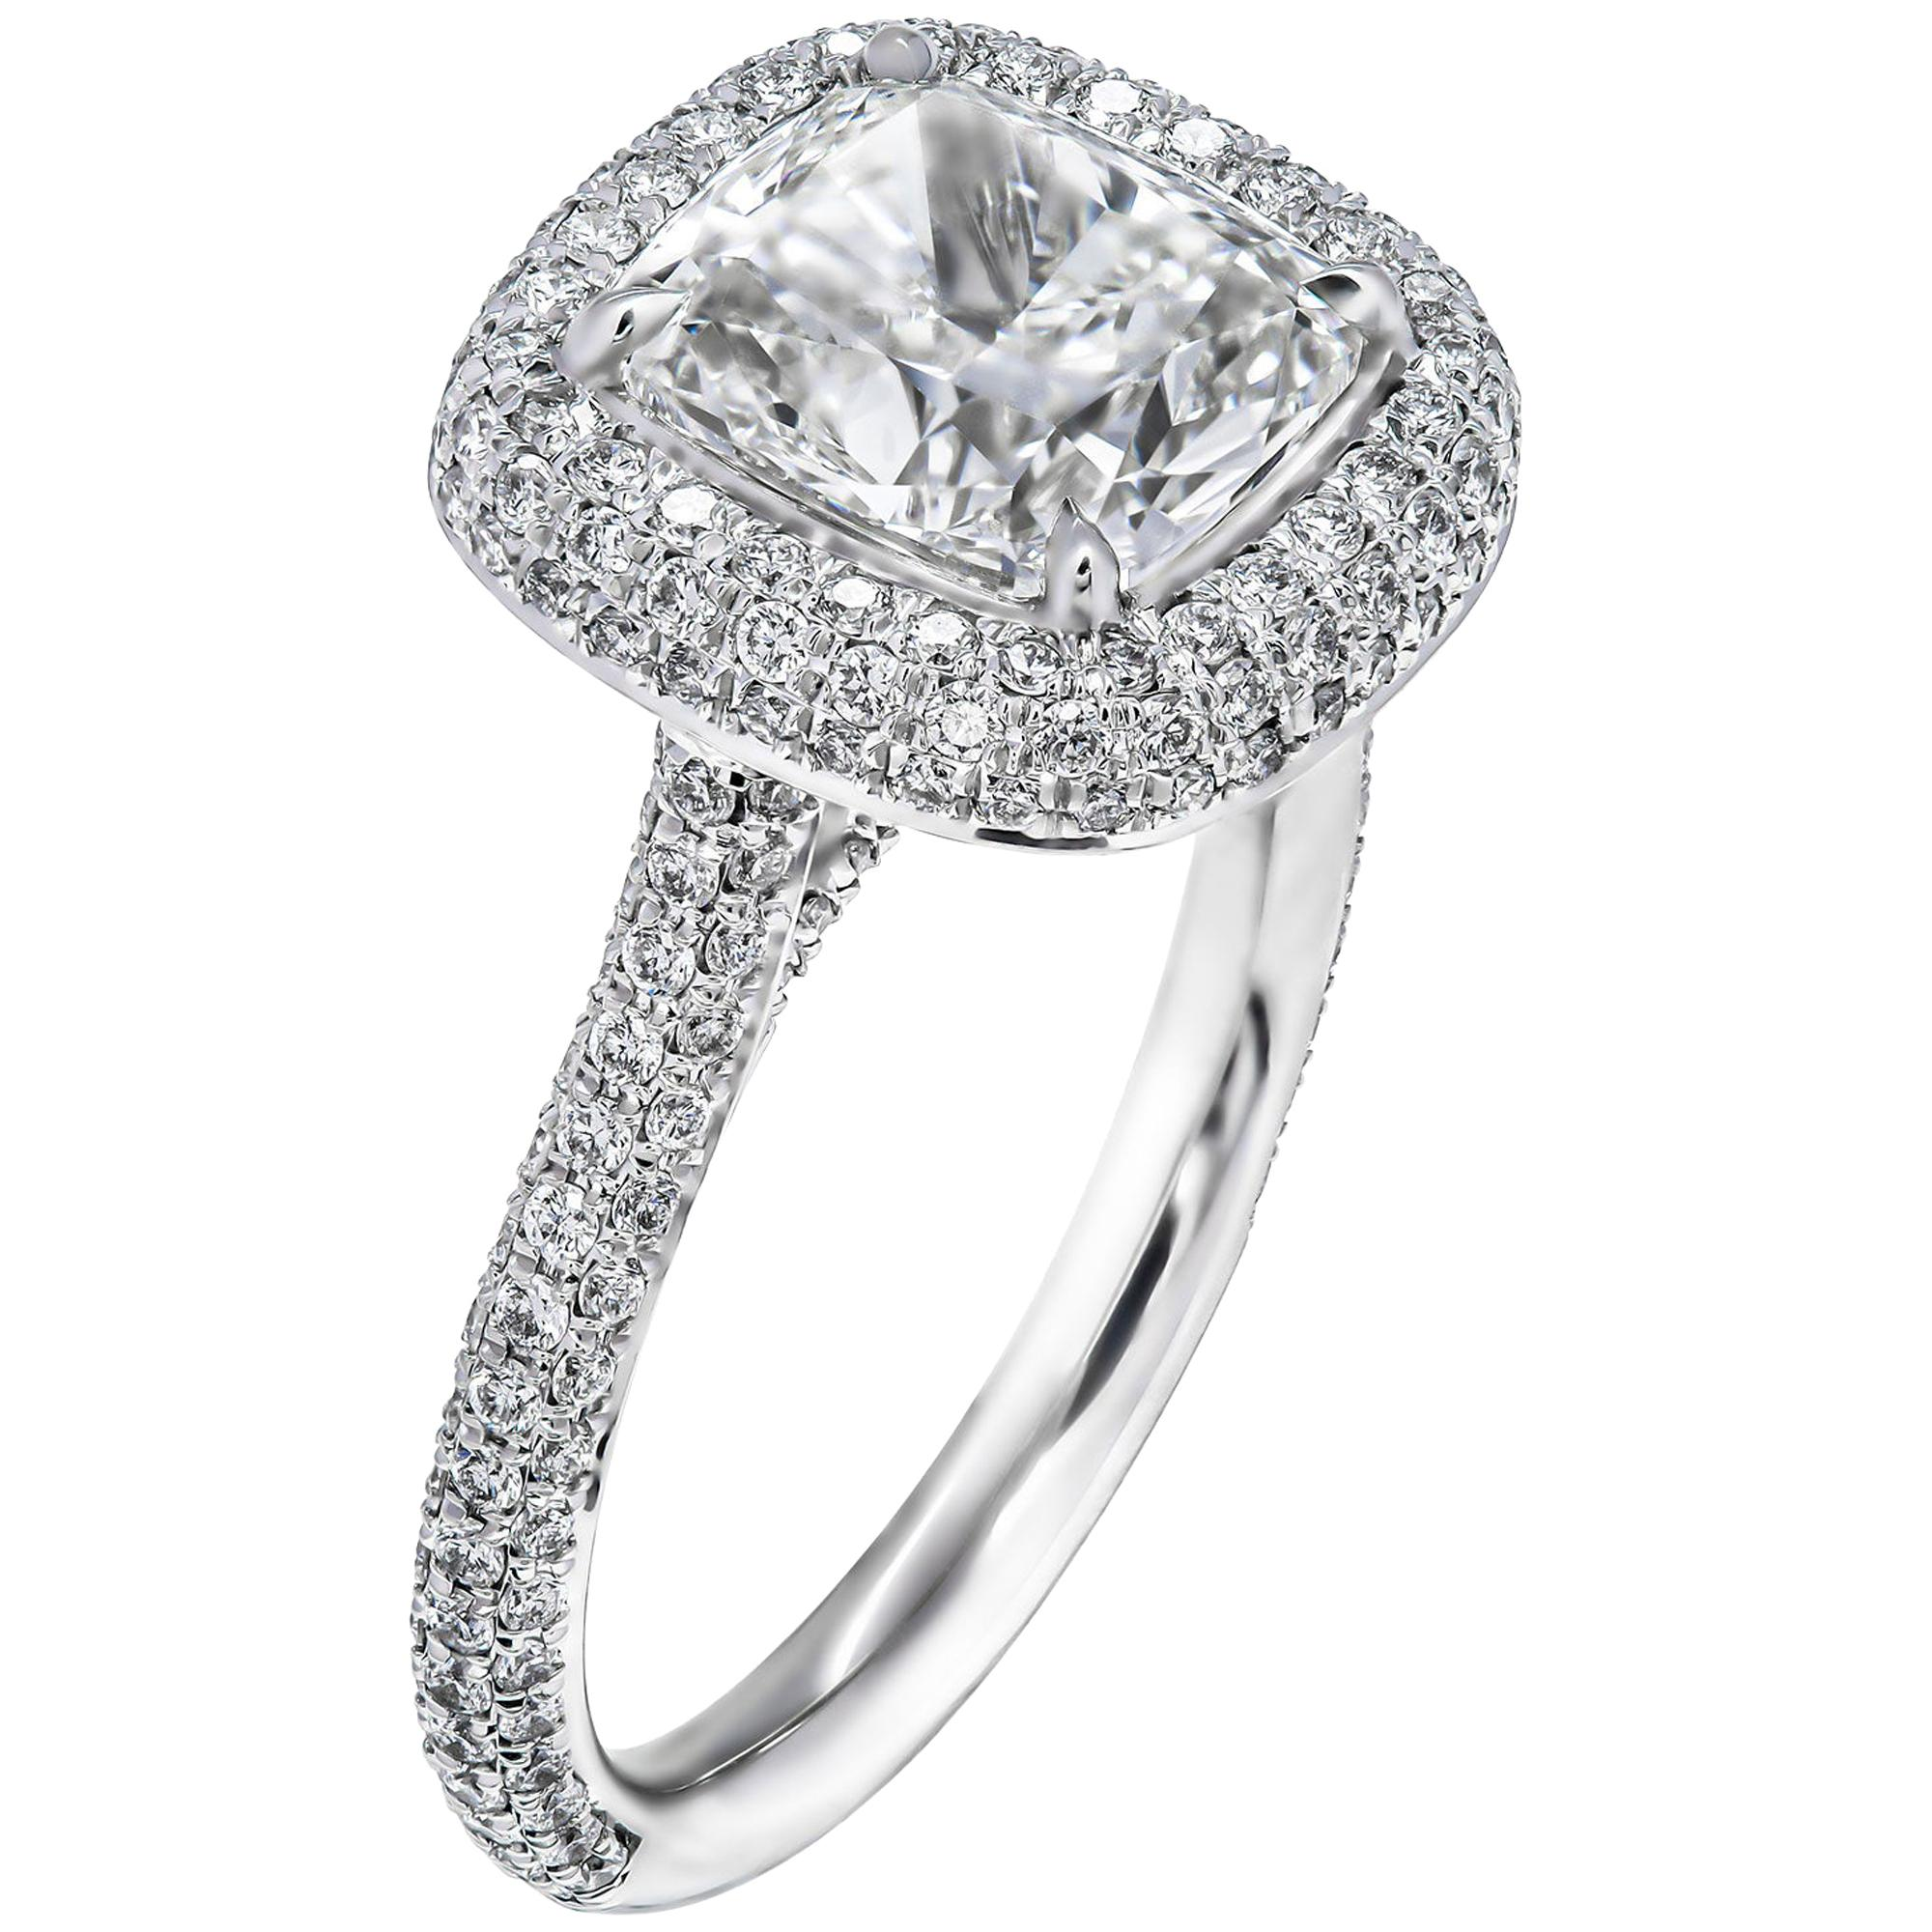 GIA Certified Engagement Ring with 3.03 Carat Cushion Cut Diamond